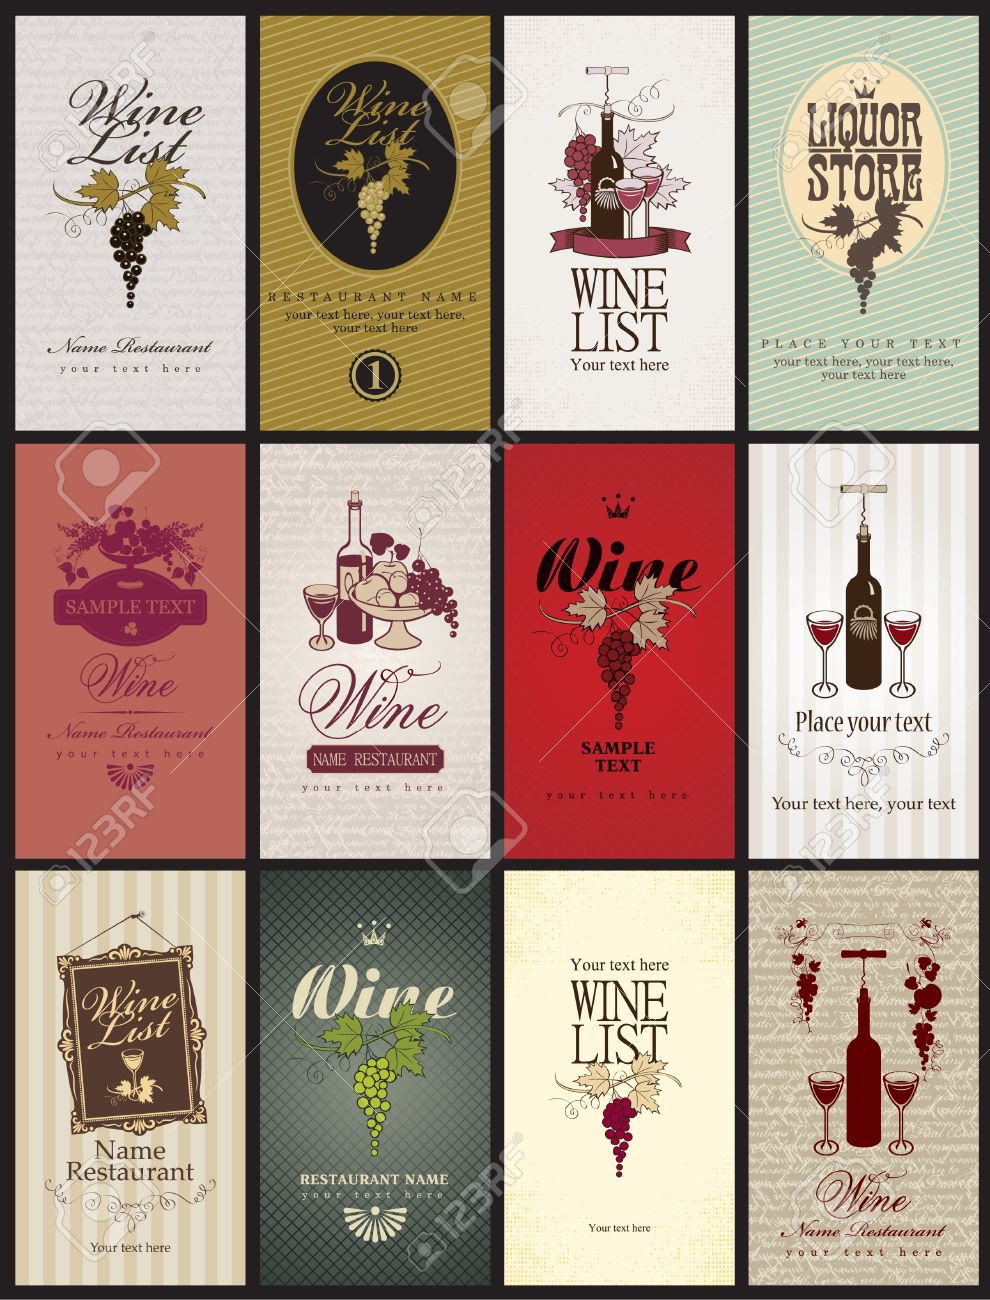 set of business cards on Wine - 24529605